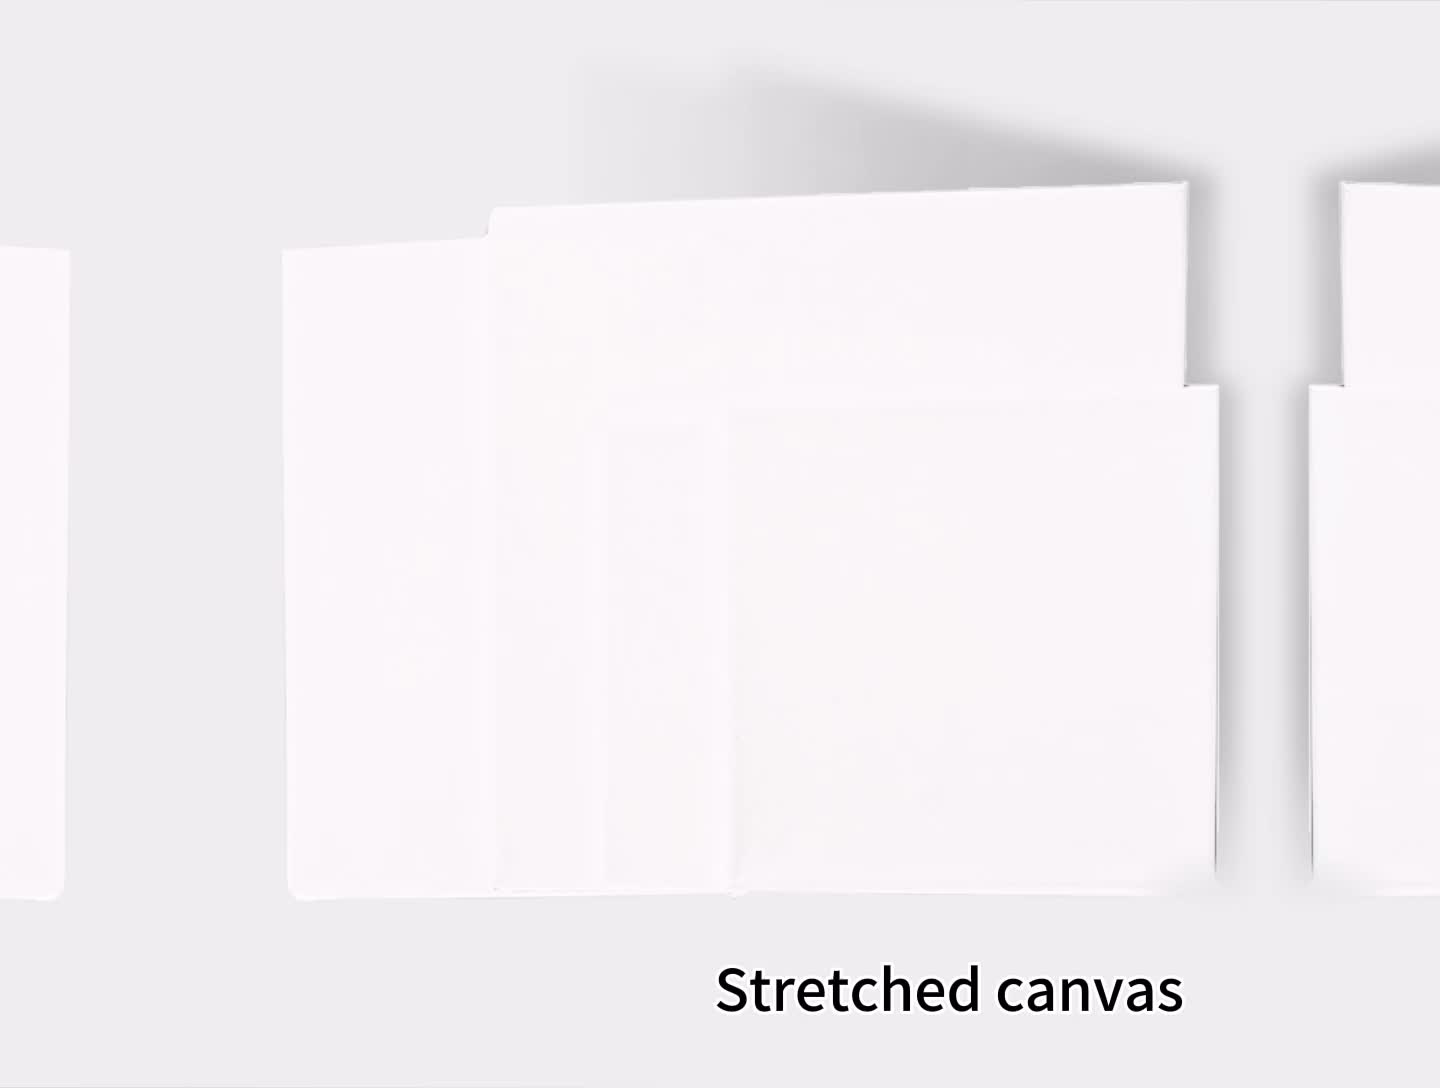 Cheap Art Wood Canvas Painting Panel Board Cotton Stretched, 8X10 Artist Acid Free Canvas Panel Boards For Painting Wholesale